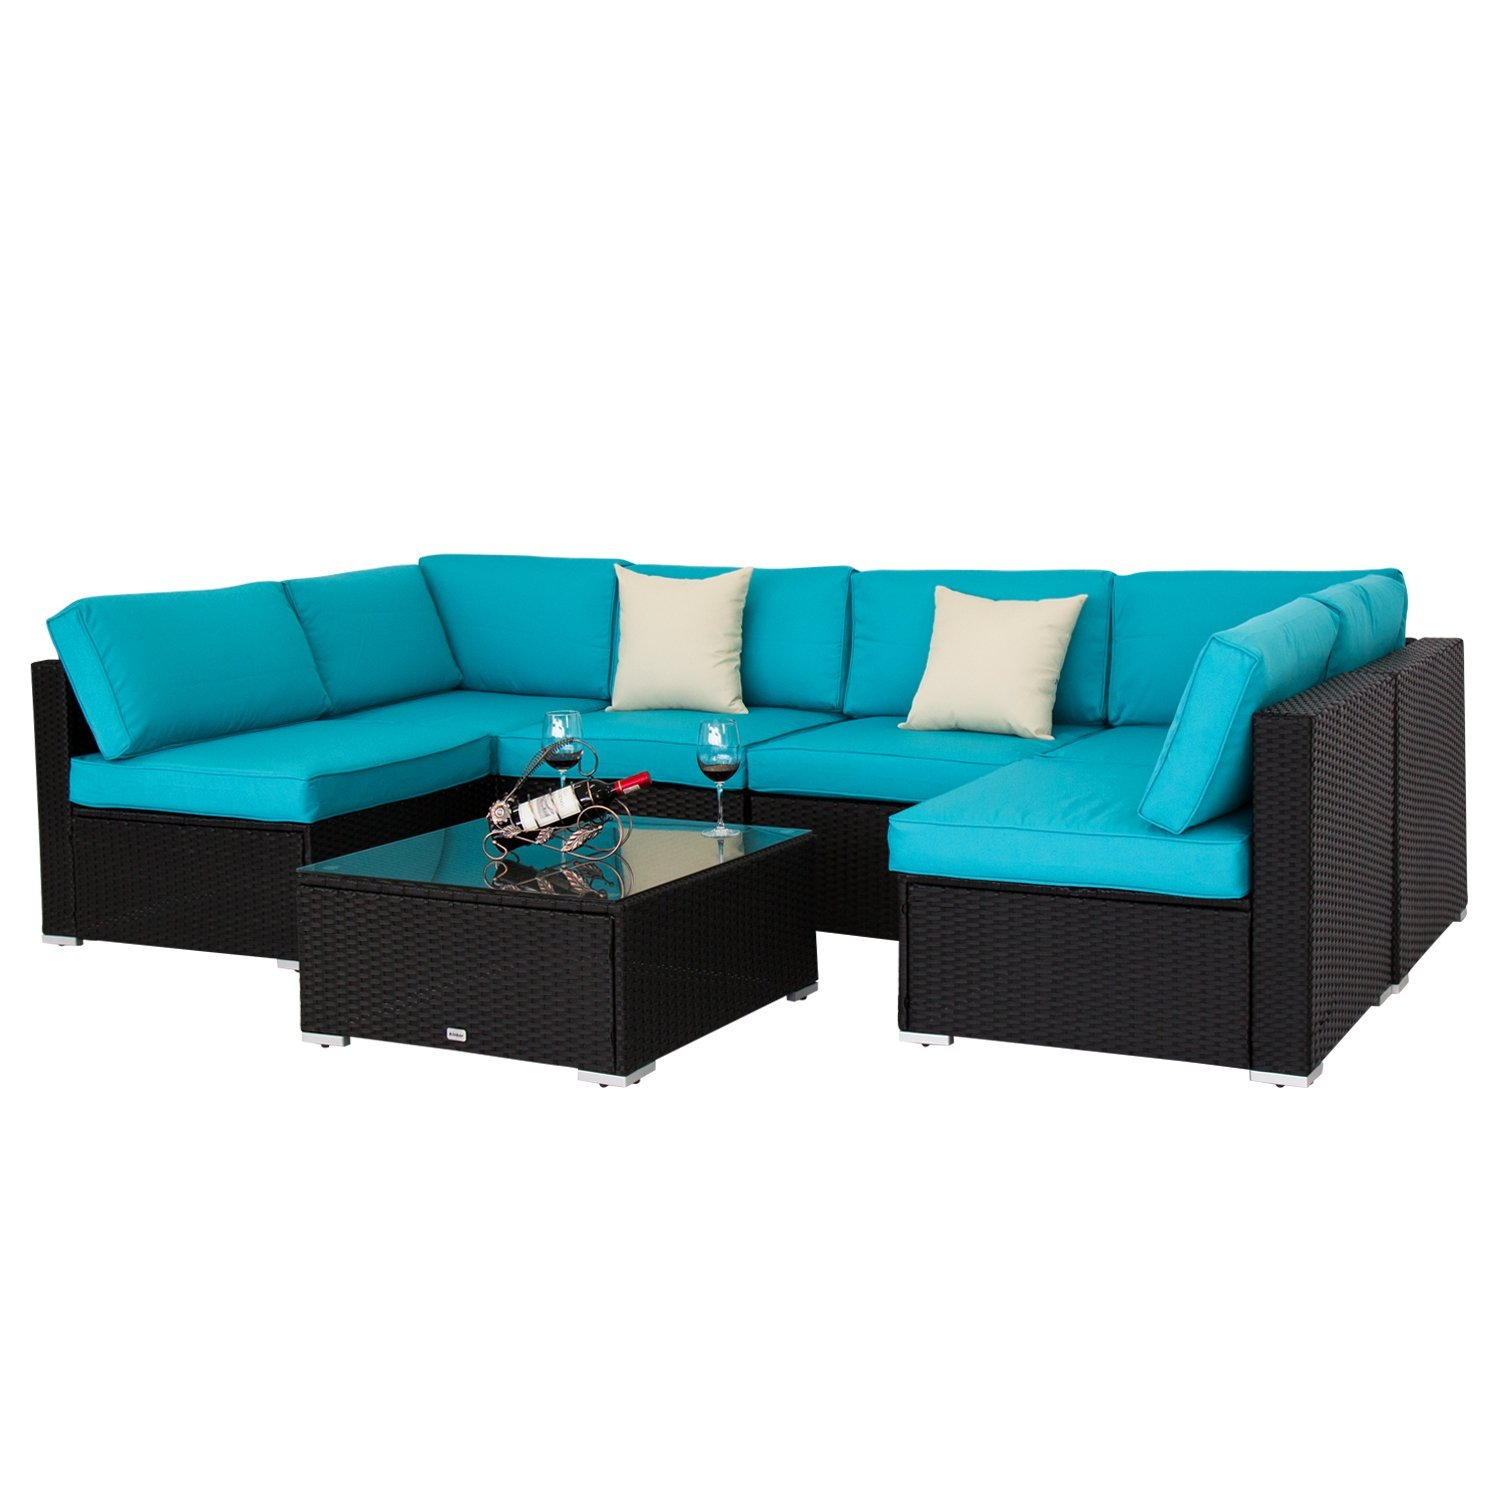 ⭐️ Best Sectional Sofas Under 1000 ⋆ Best Cheap Reviews